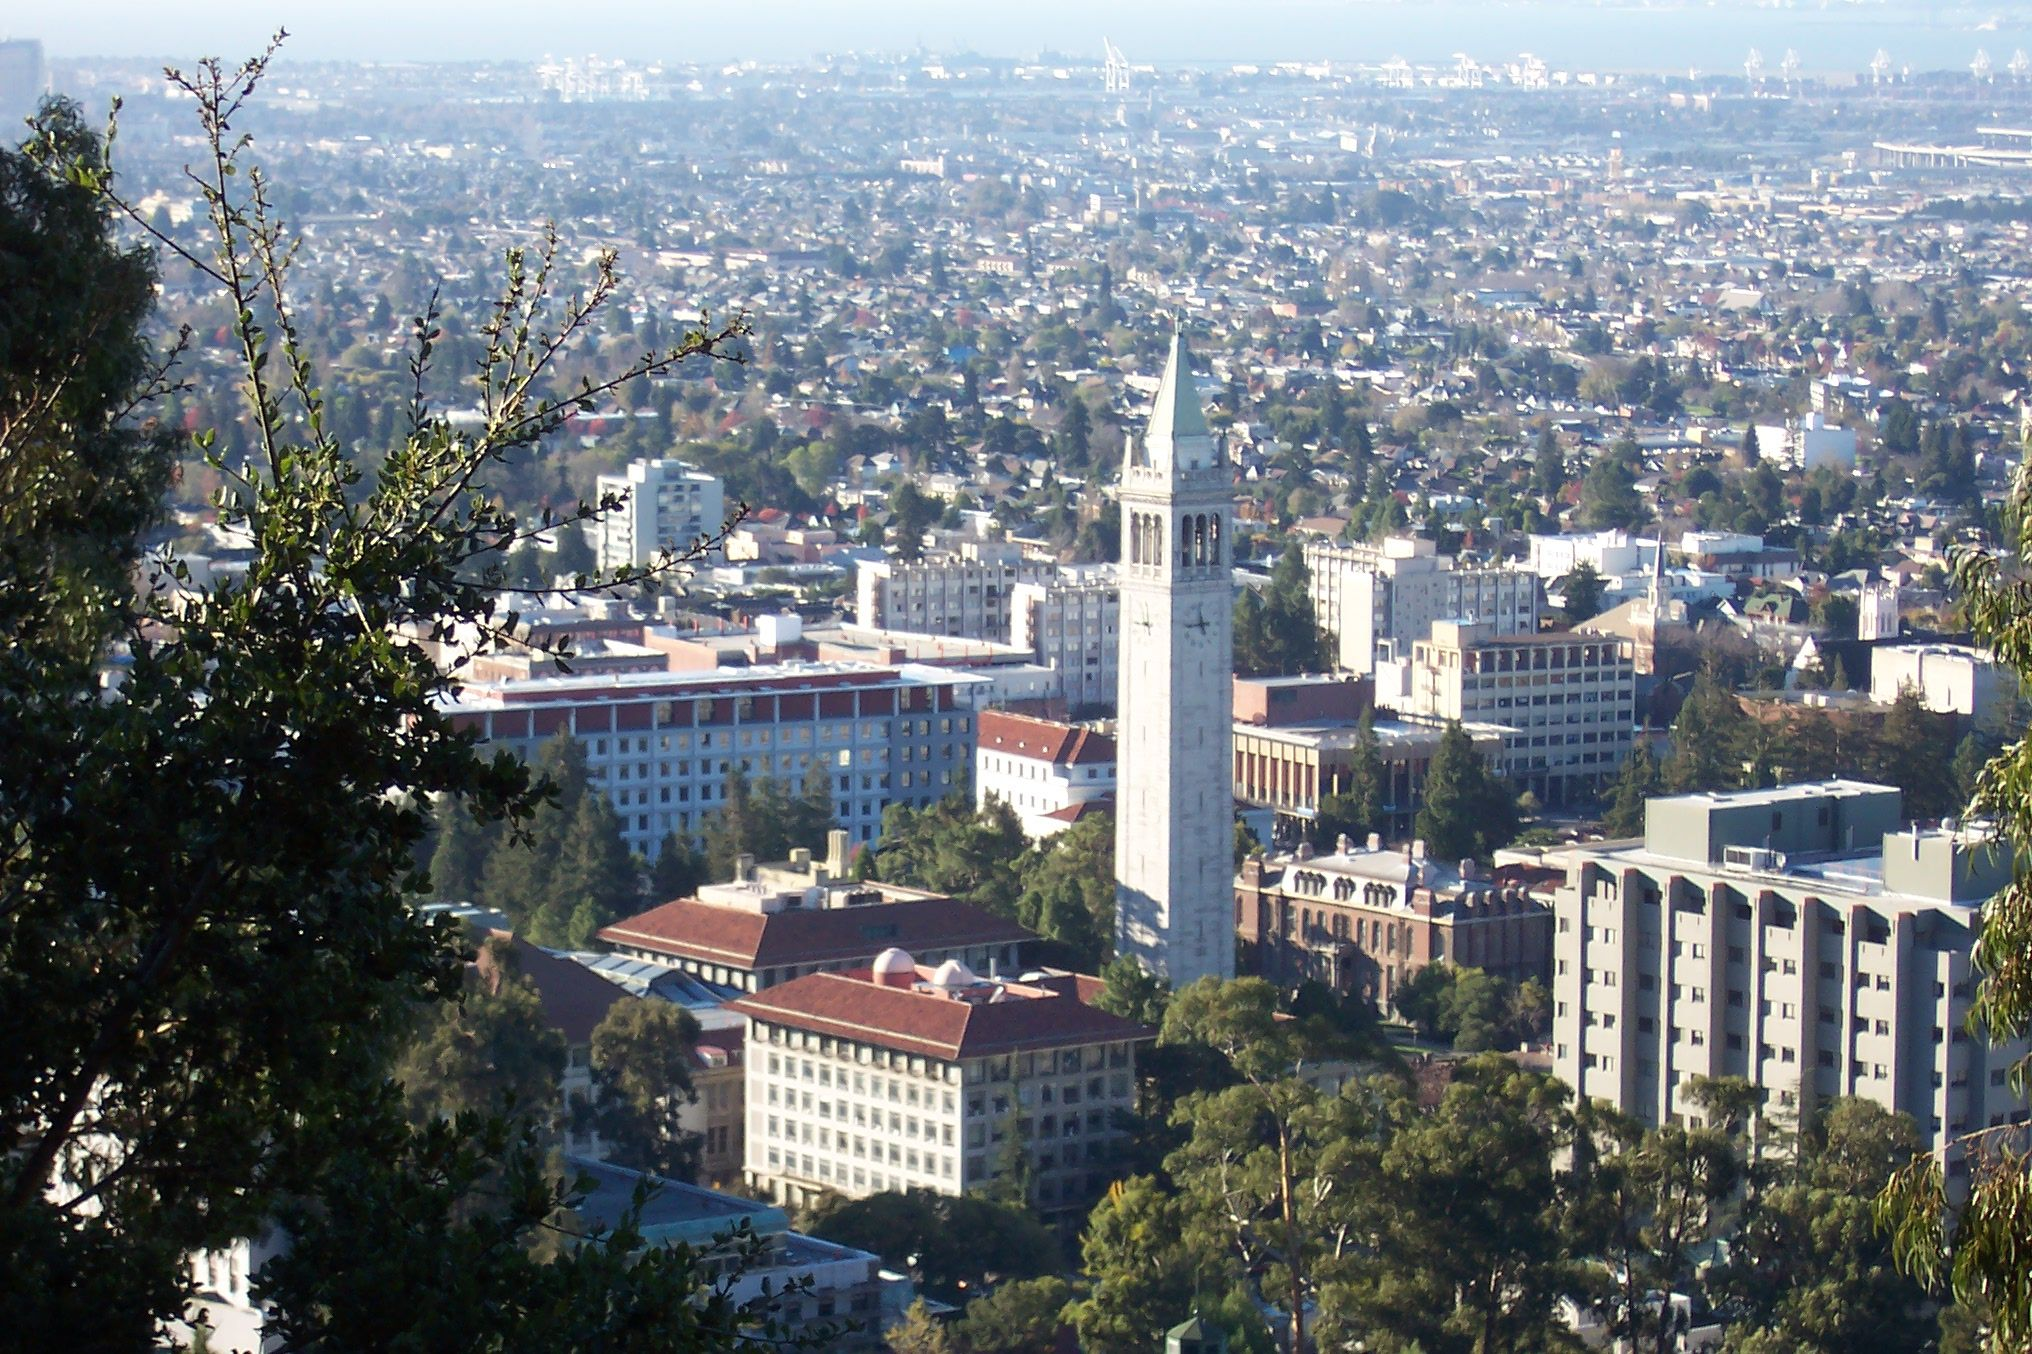 UC-Berkeley-campus-overview-from-hills_h